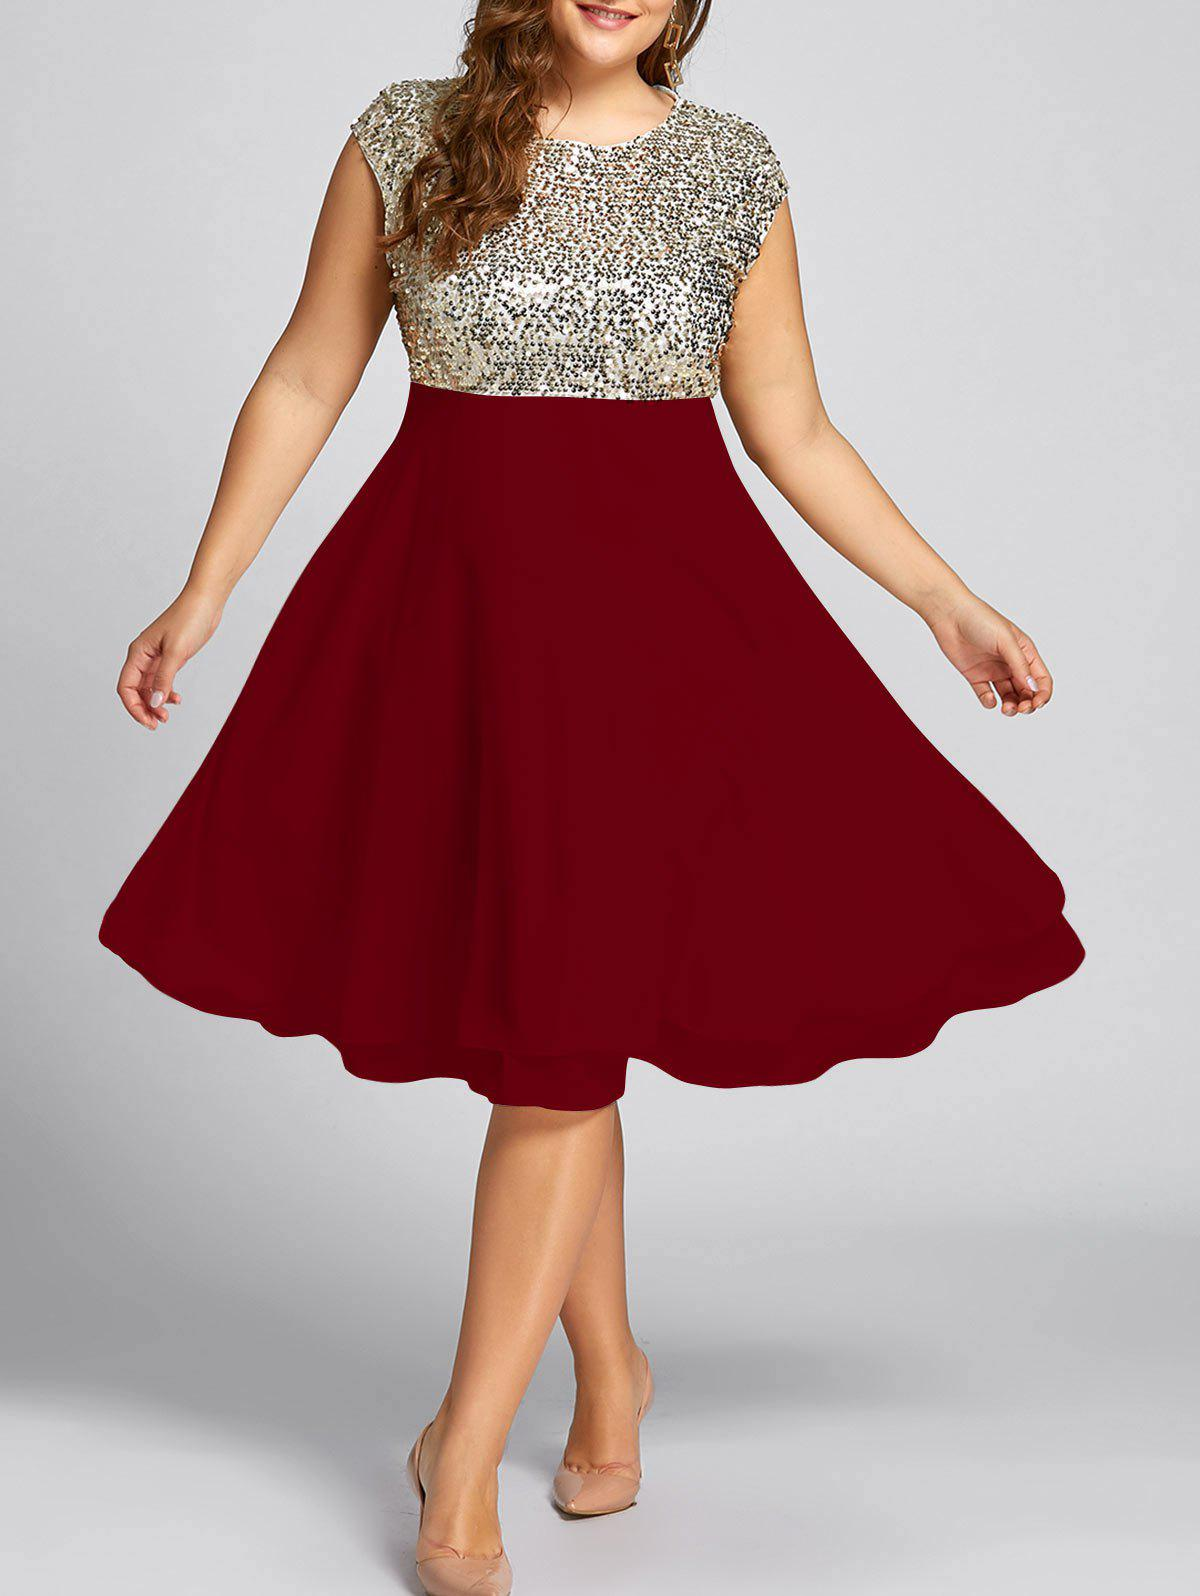 9b3b98d87120 48% OFF   2019 Flounce Plus Size Sparkly Sequin Cocktail Dress ...